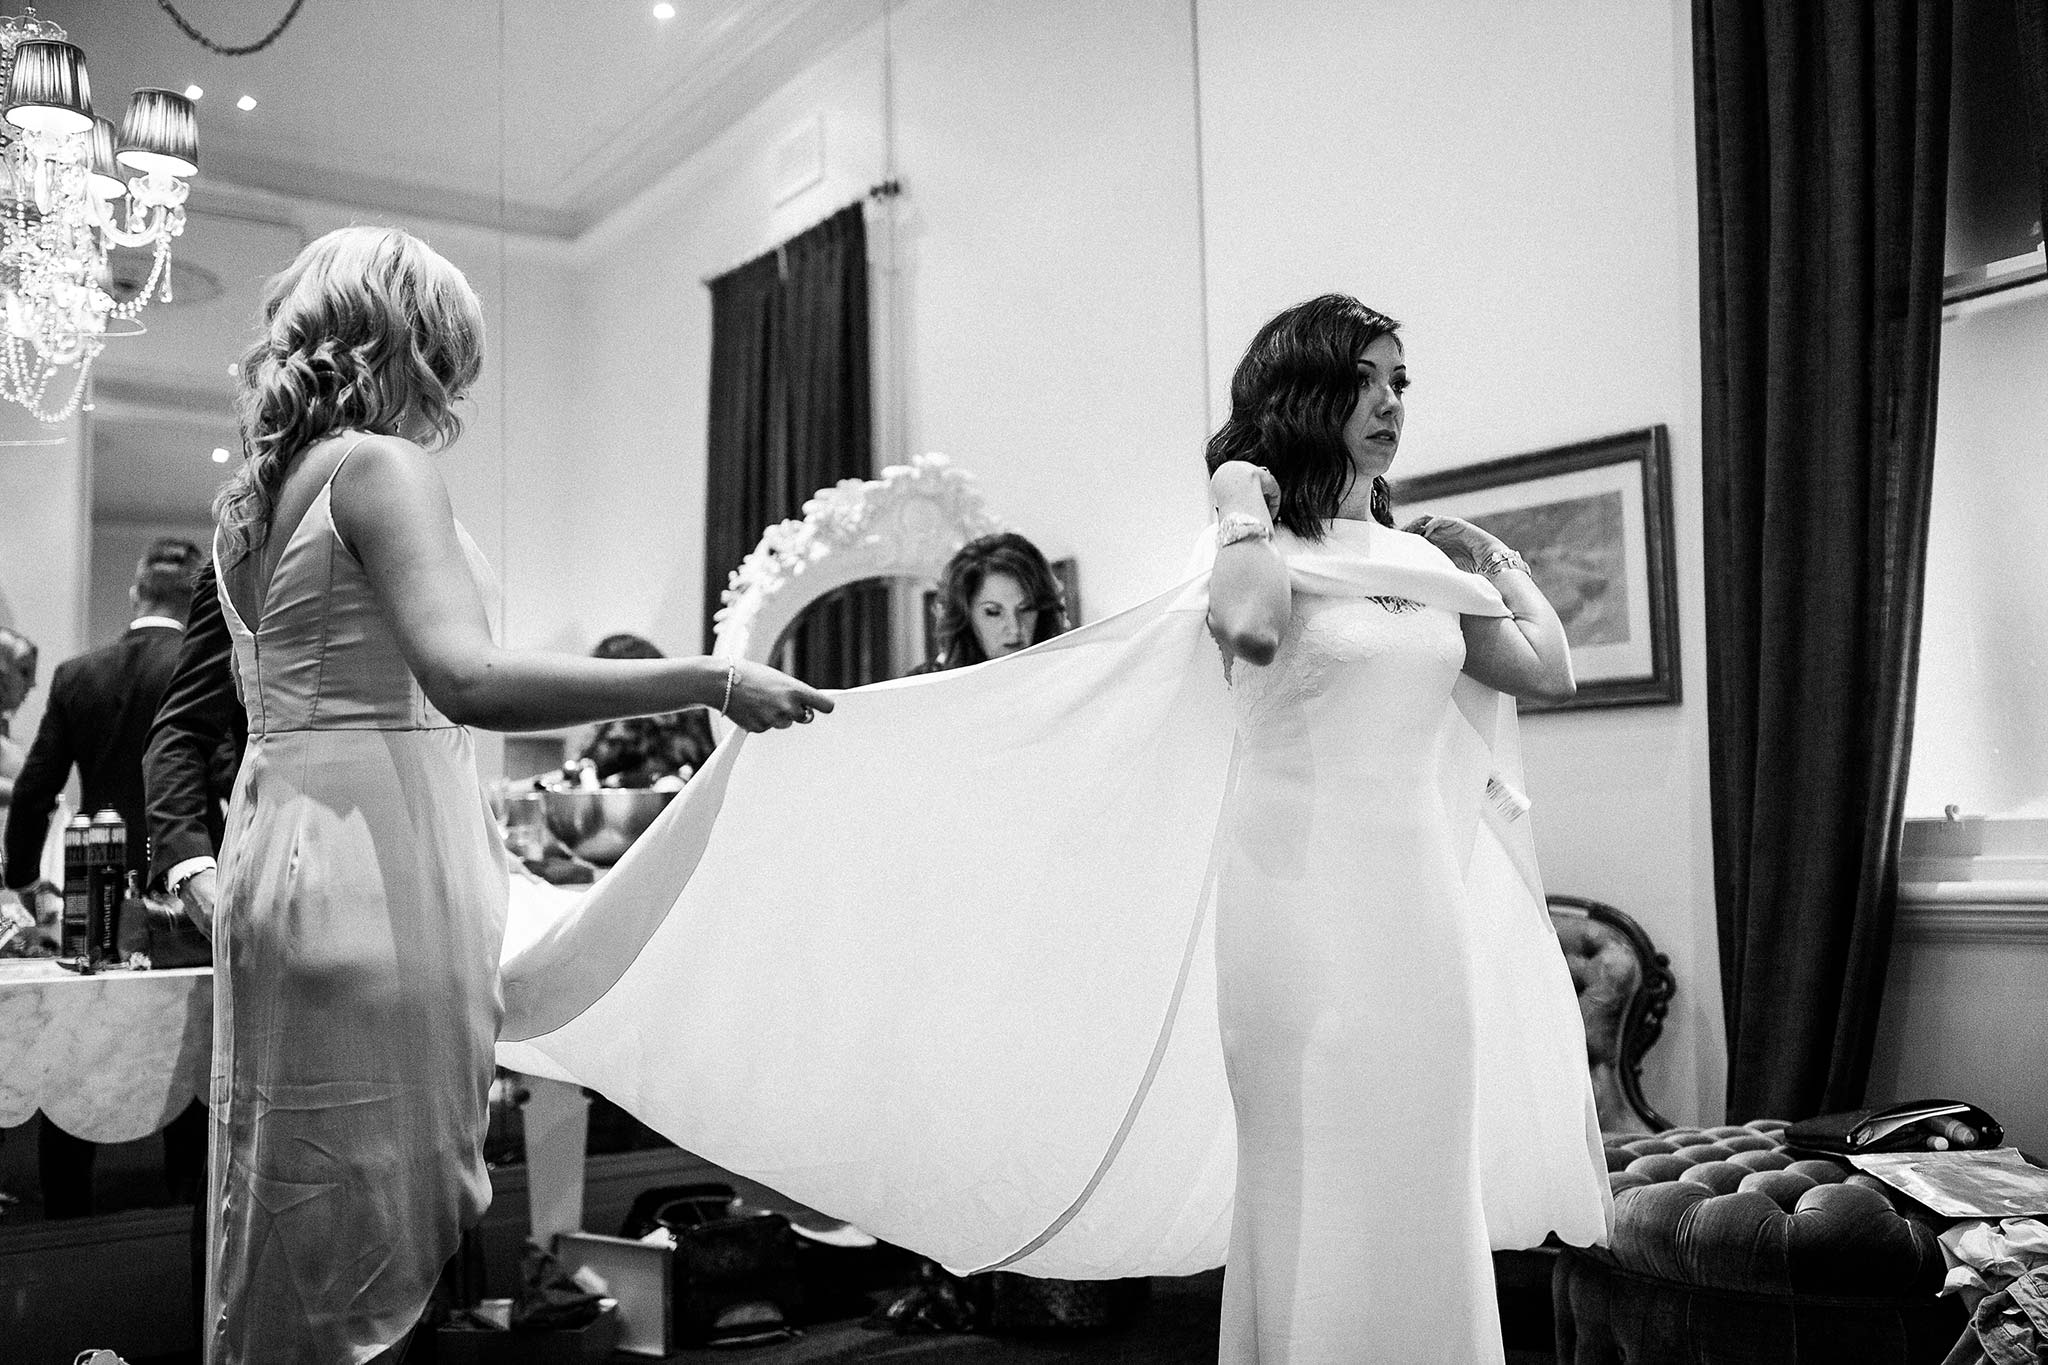 quat-quatta-night-wedding-bride-getting-ready-long-dress